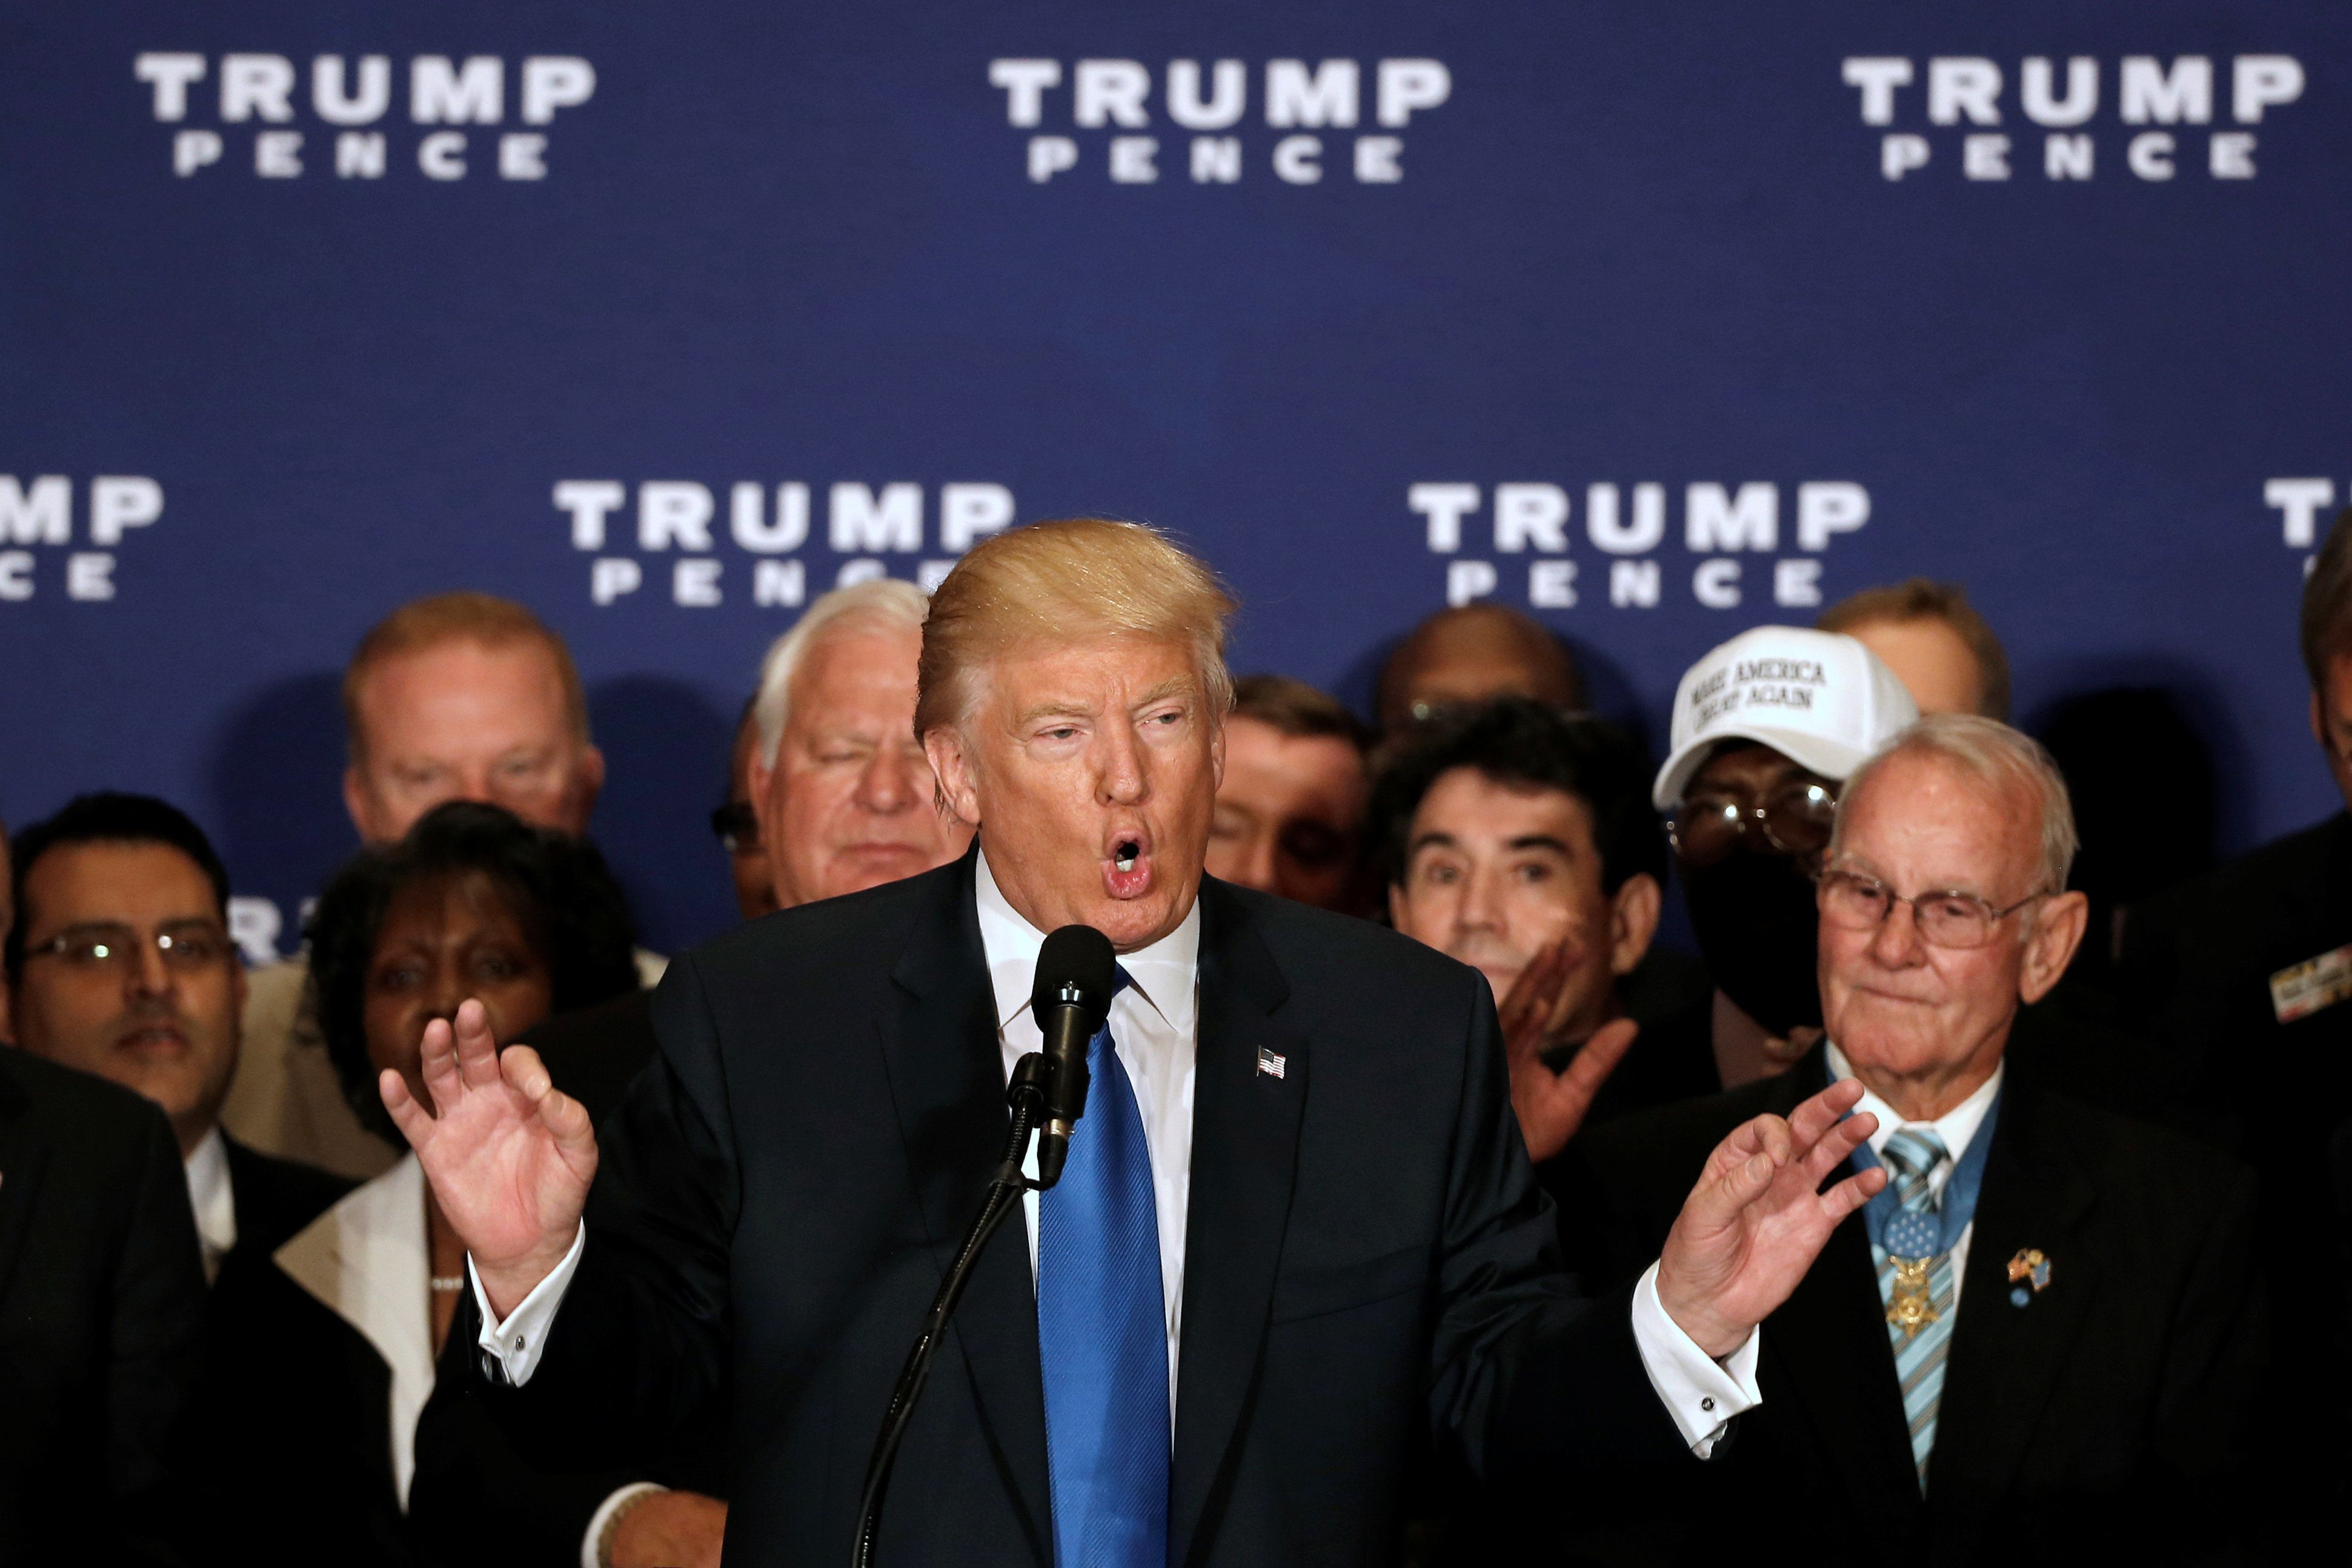 Republican presidential nominee Donald Trump states that he believes U.S. President Barack Obama was born in the United States at a campaign event at the Trump International Hotel in Washington, D.C., U.S., September 16, 2016.  REUTERS/Mike Segar